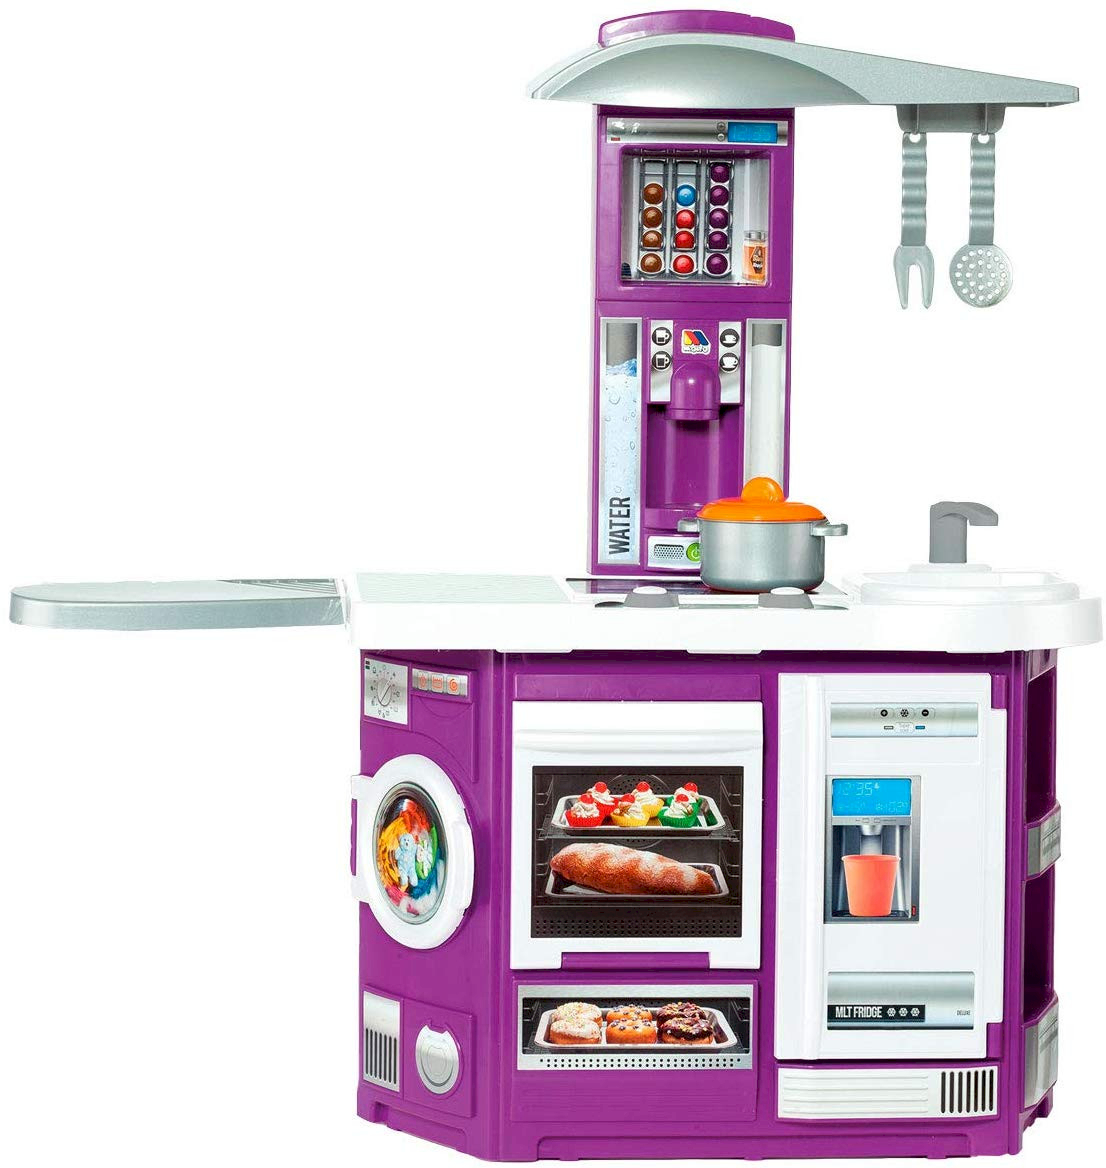 Cucina Cook'n Play New Edition